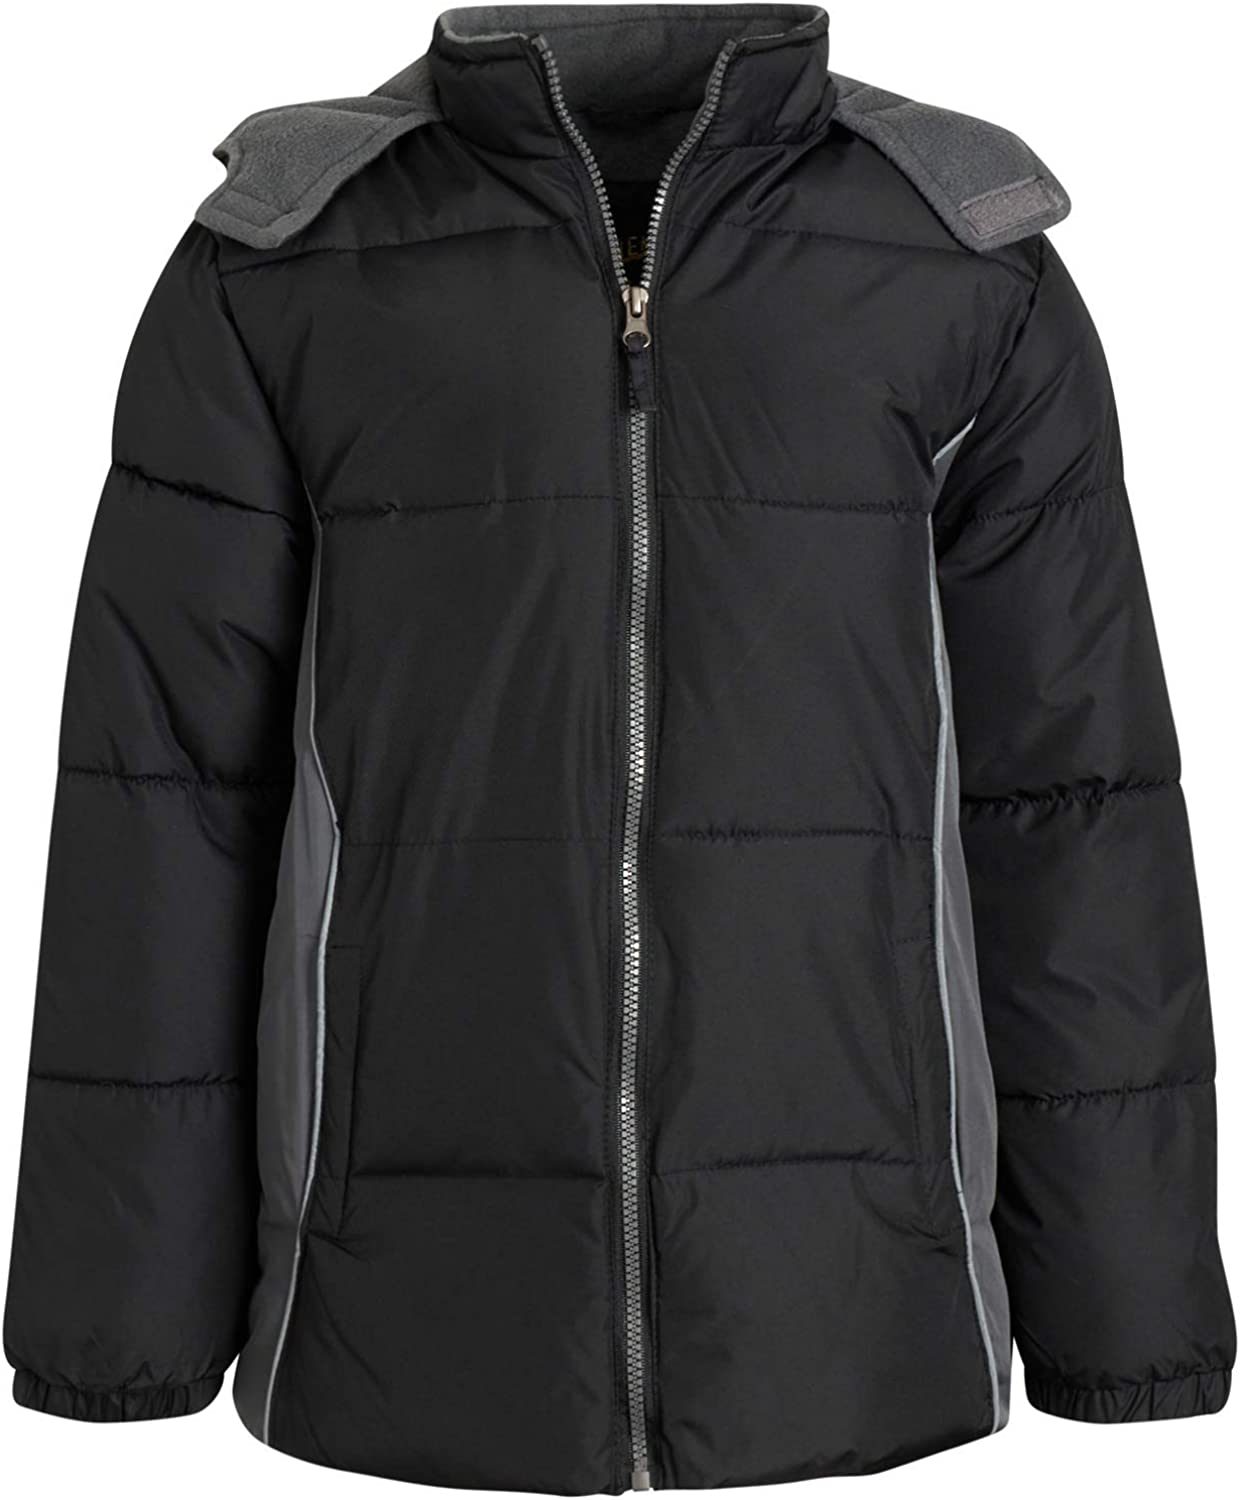 iXtreme Boys' Winter Jacket - Fleece Water R Puffer Max 56% OFF Year-end gift Bubble Lined